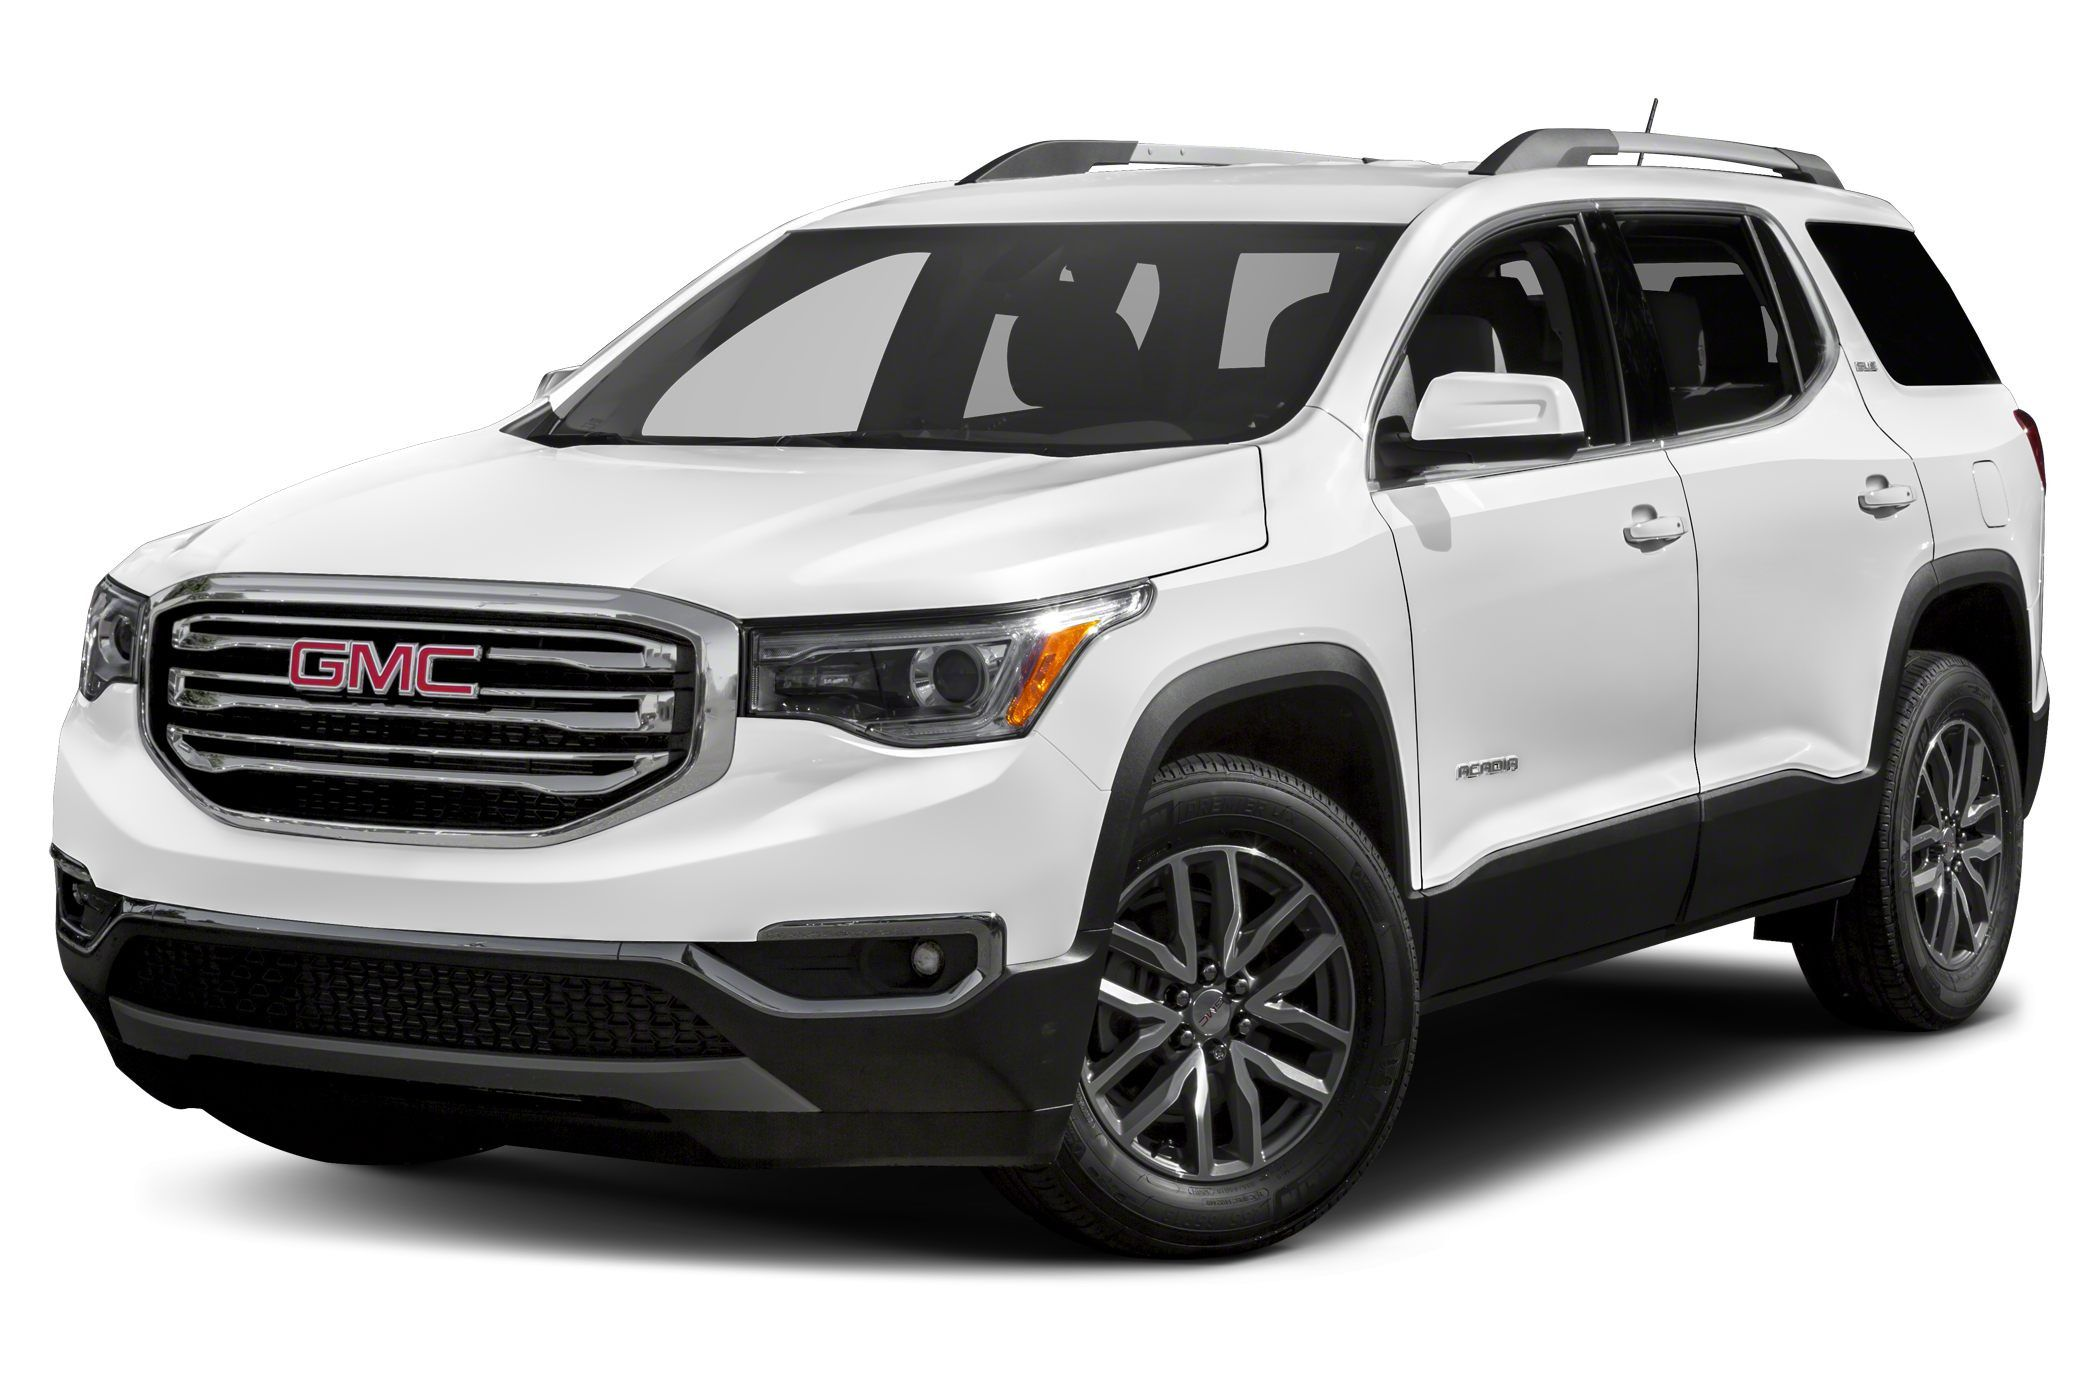 2019 Gmc Acadia Check More At Http Www New Cars Club 2017 09 22